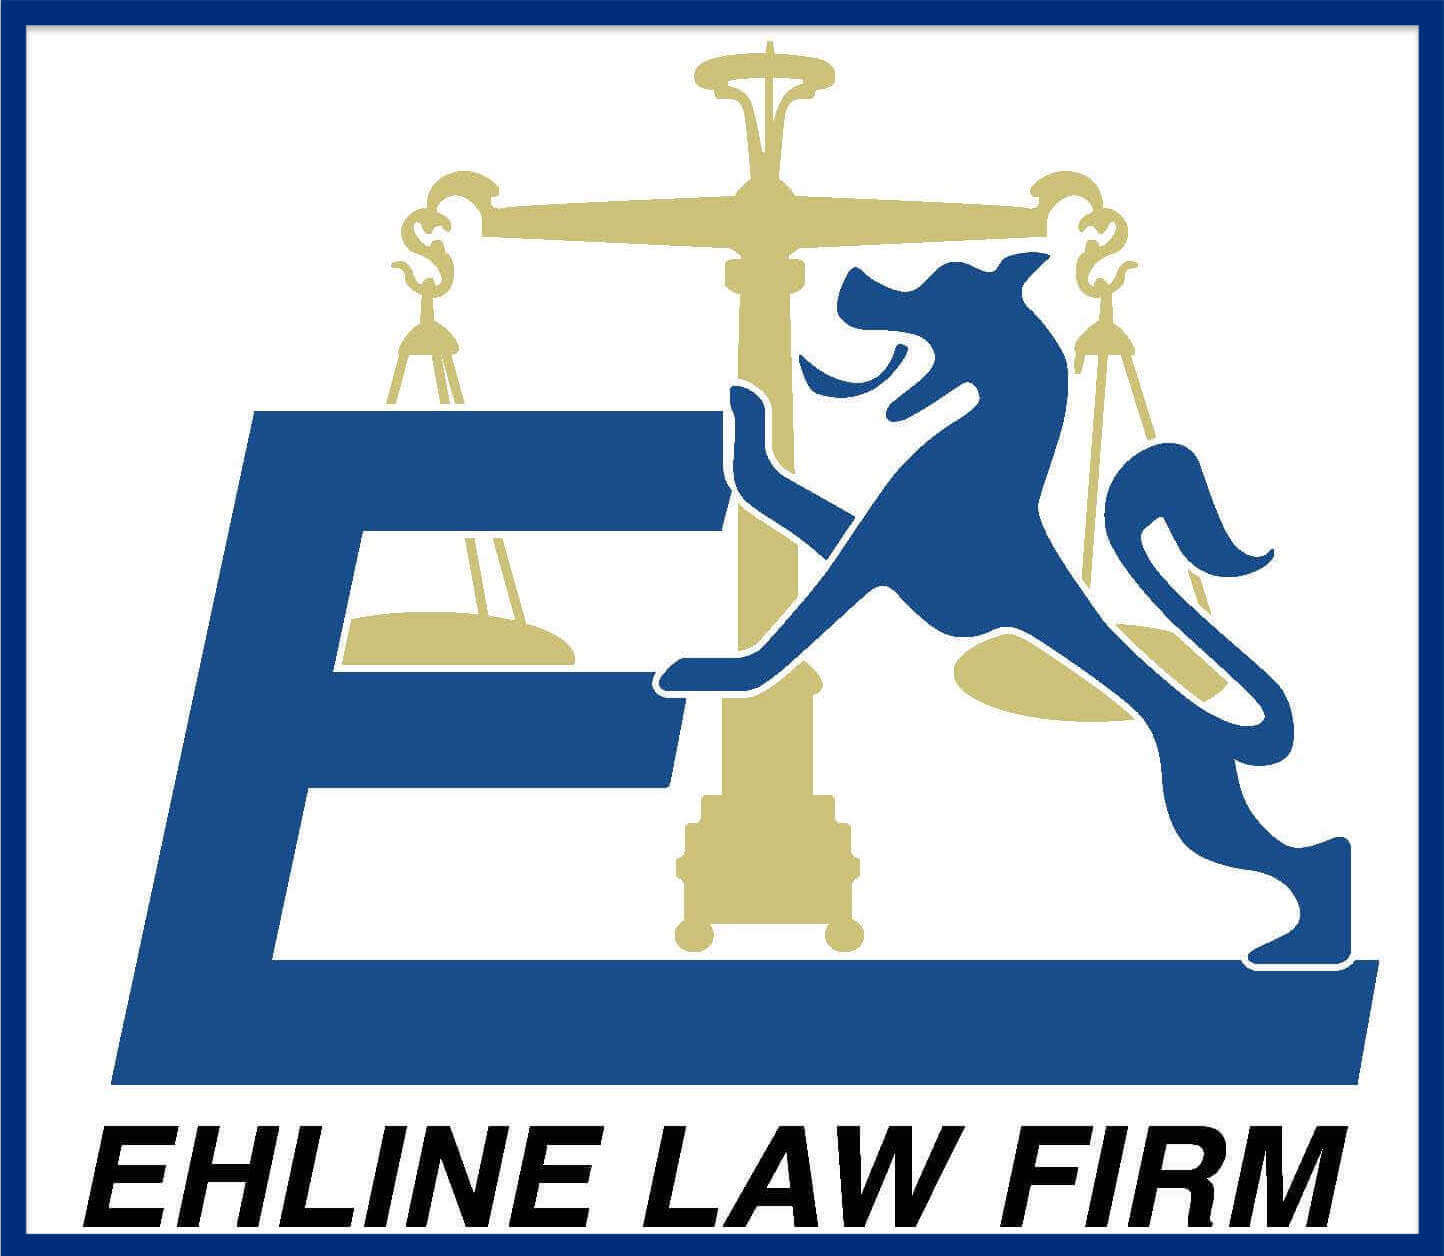 Ehline Law Firm